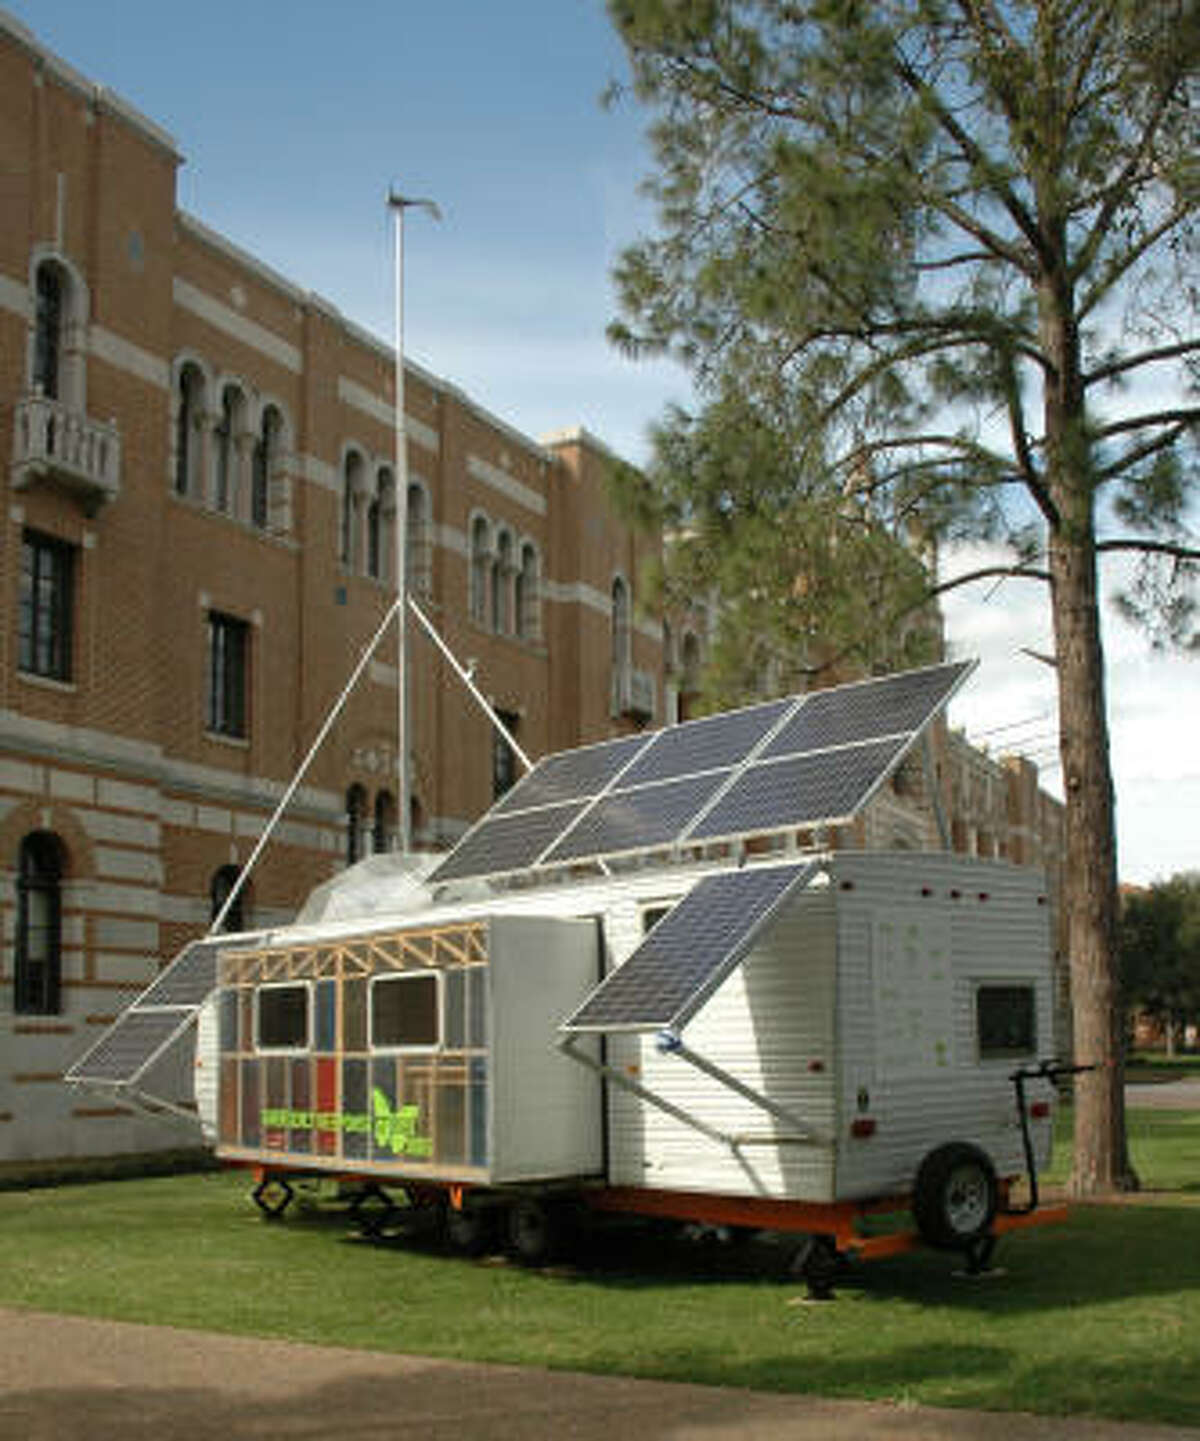 Paul Villinski's mobile exhibit Emergency Response Studio not only addresses the struggles since Hurricane Katrina, but also provides information about movable housing. And it's solar-powered, too.